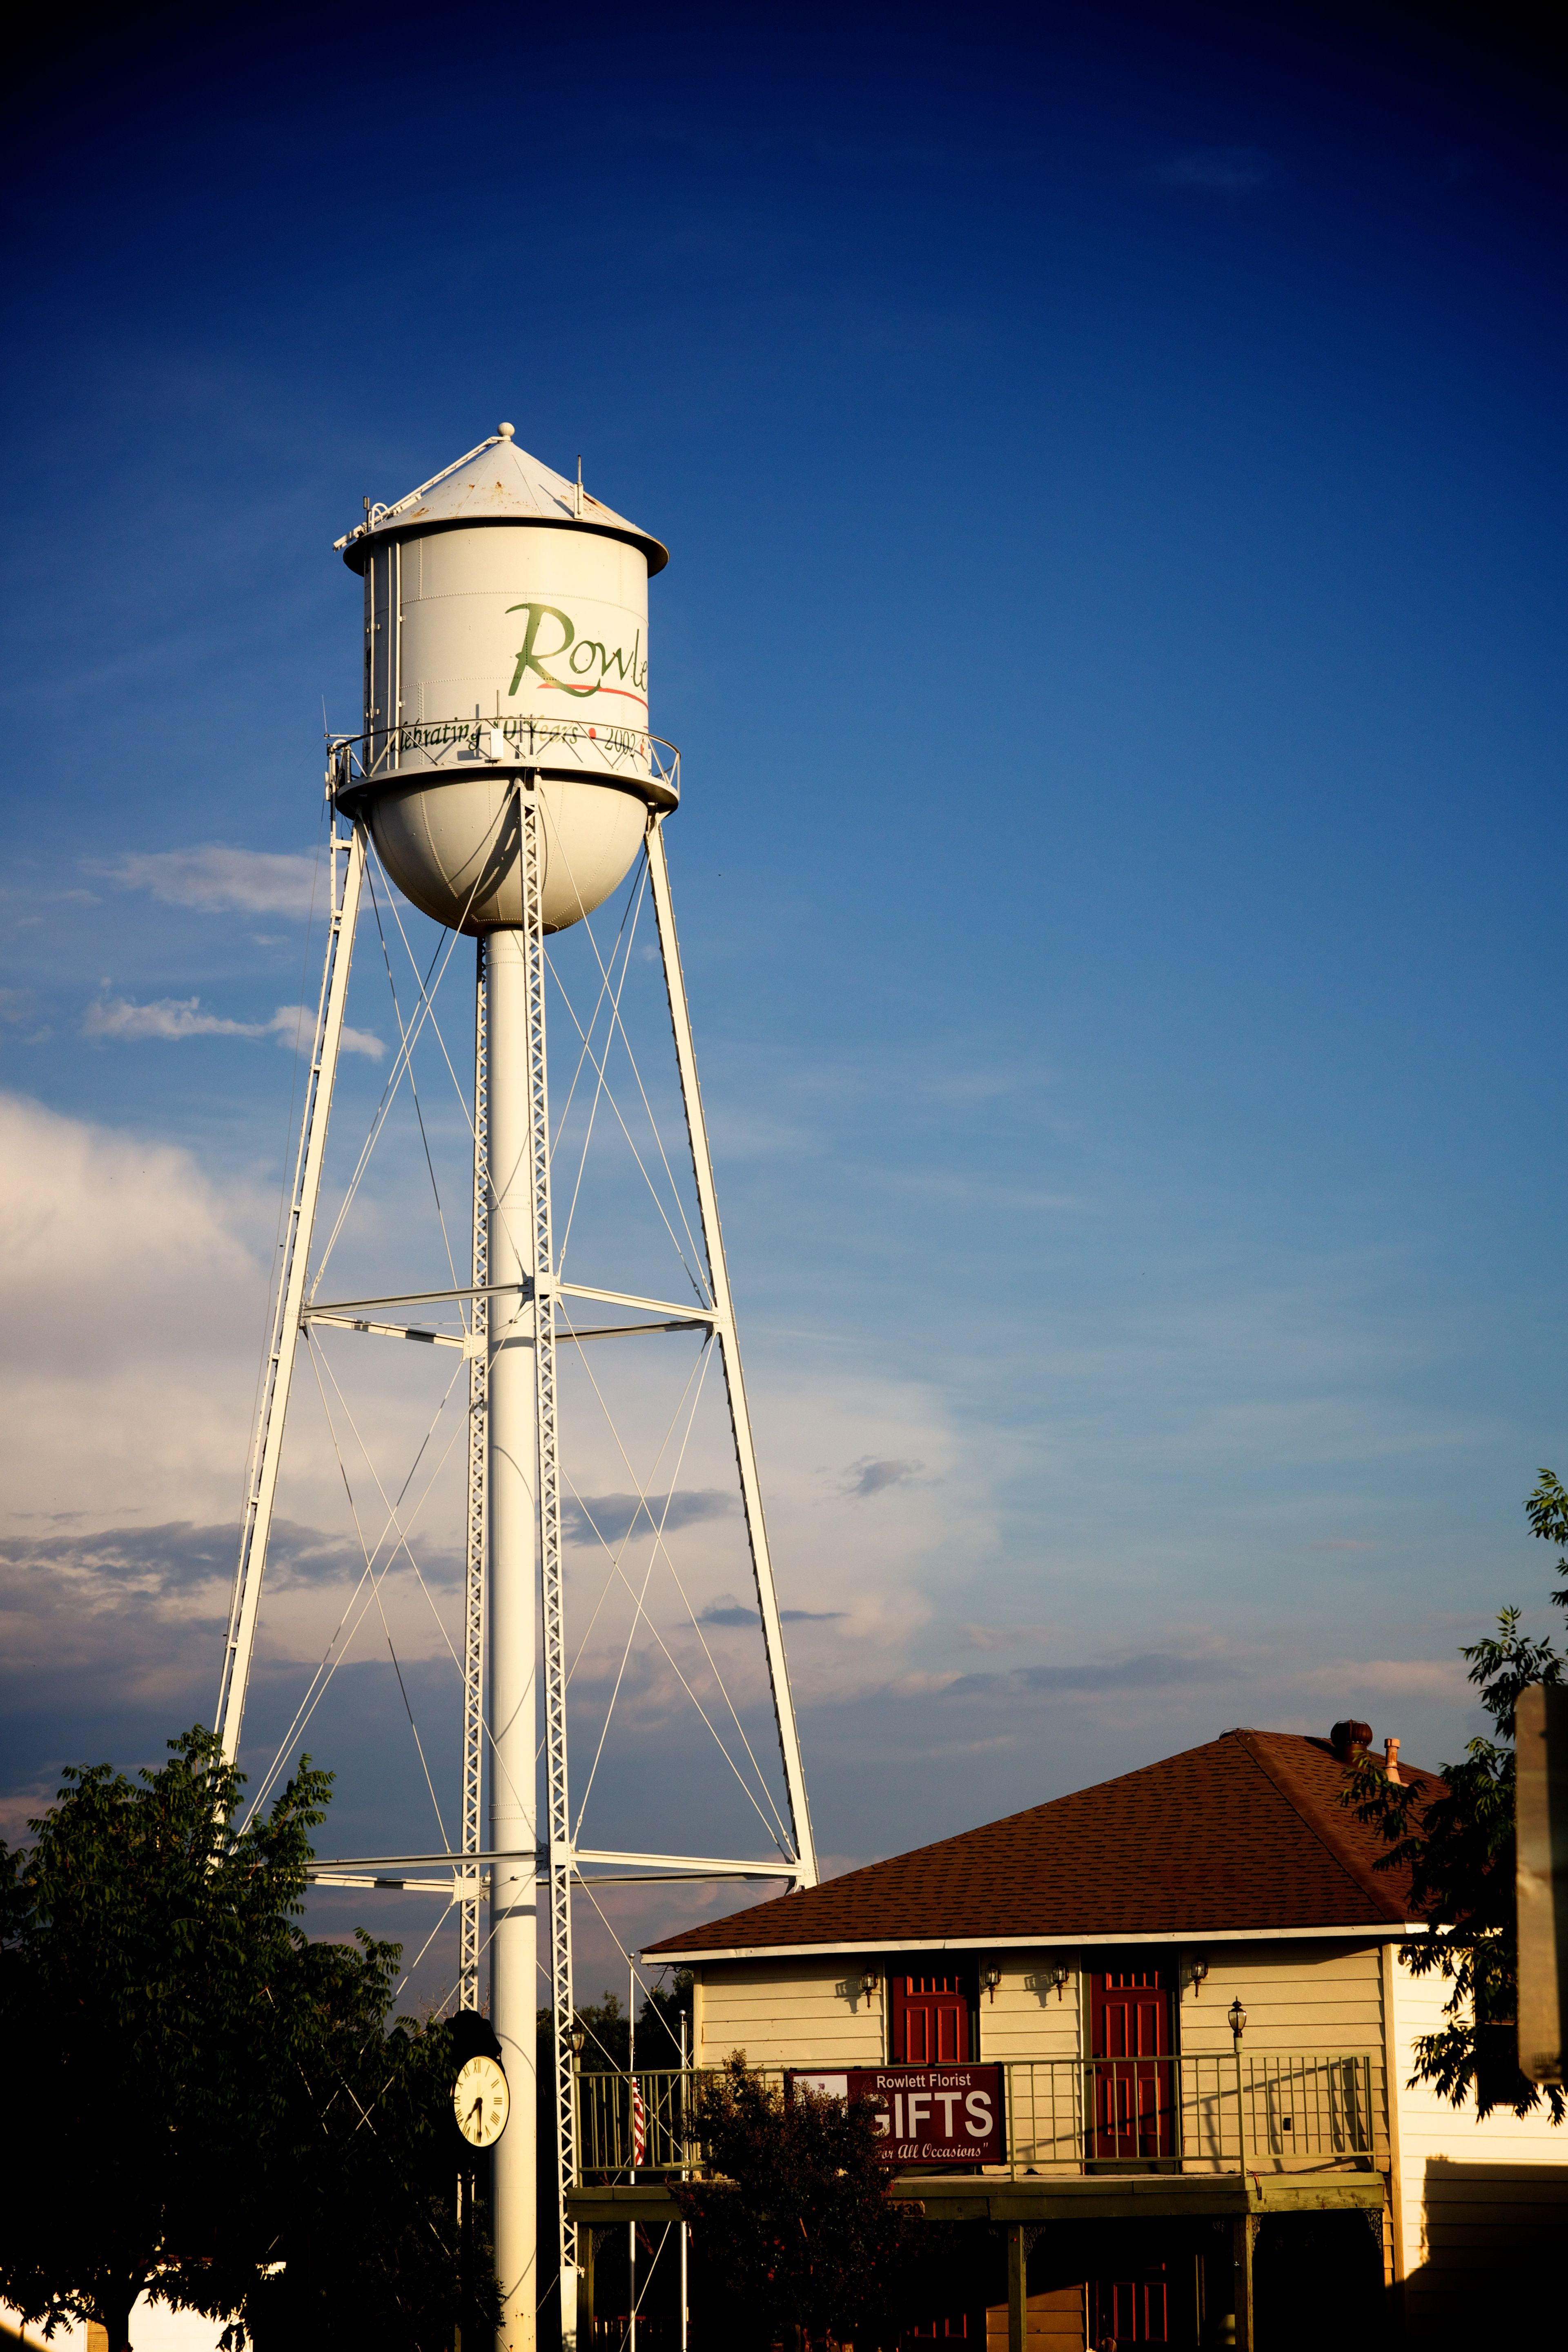 Rowlett, TX Water Tower | Photography | Pinterest | Water tower and ...